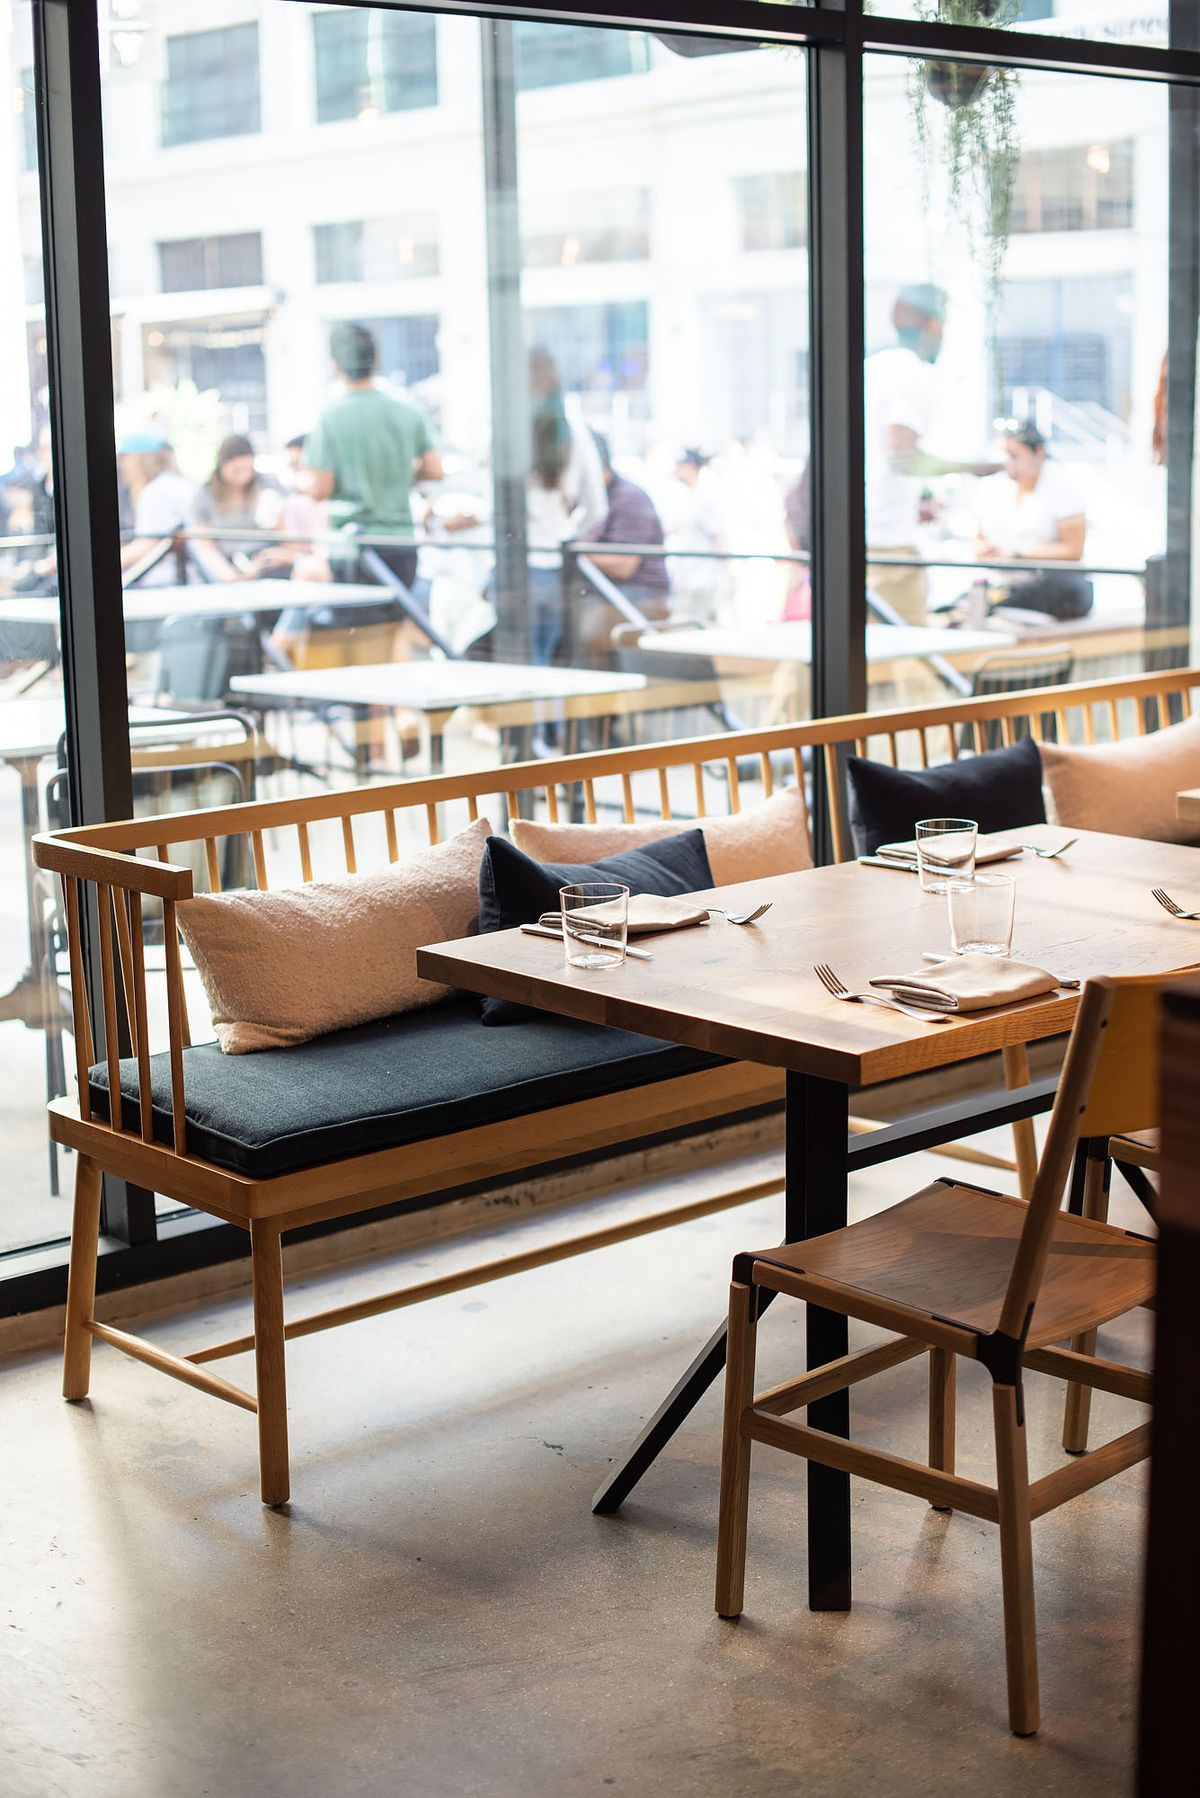 Wooden seating with dark padding at a new restaurant with big windows.